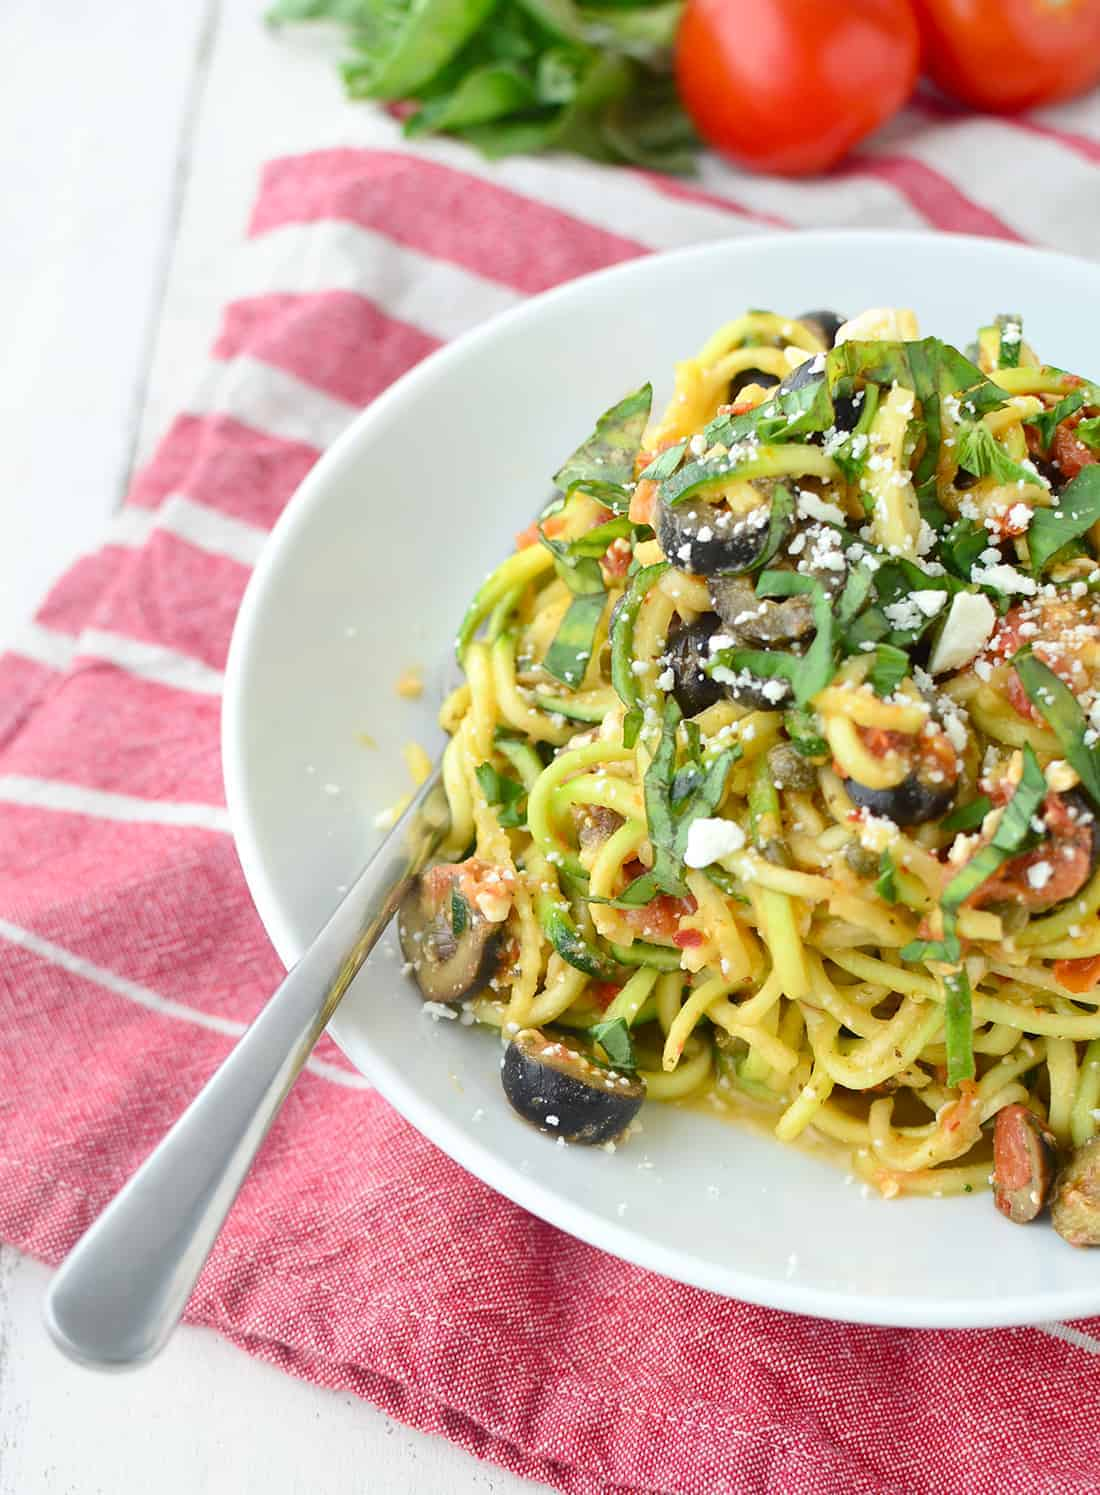 Mediterranean Zucchini Noodles! You are going to love these easy, low-carb noodles. #zoodles #healthy #vegetarian | www.delishknowledge.com